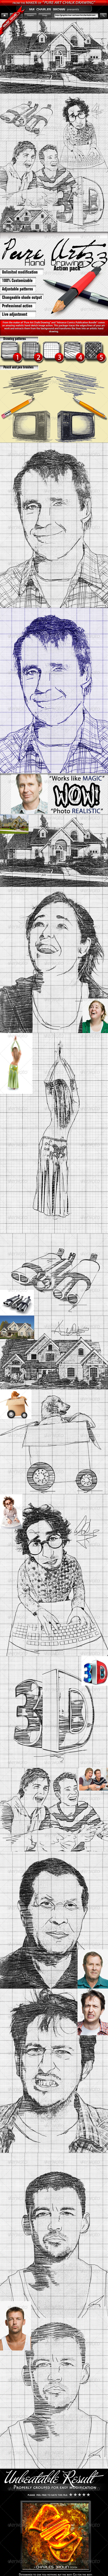 GraphicRiver Pure Art Hand Drawing 33 Italian Architect Art 5423059